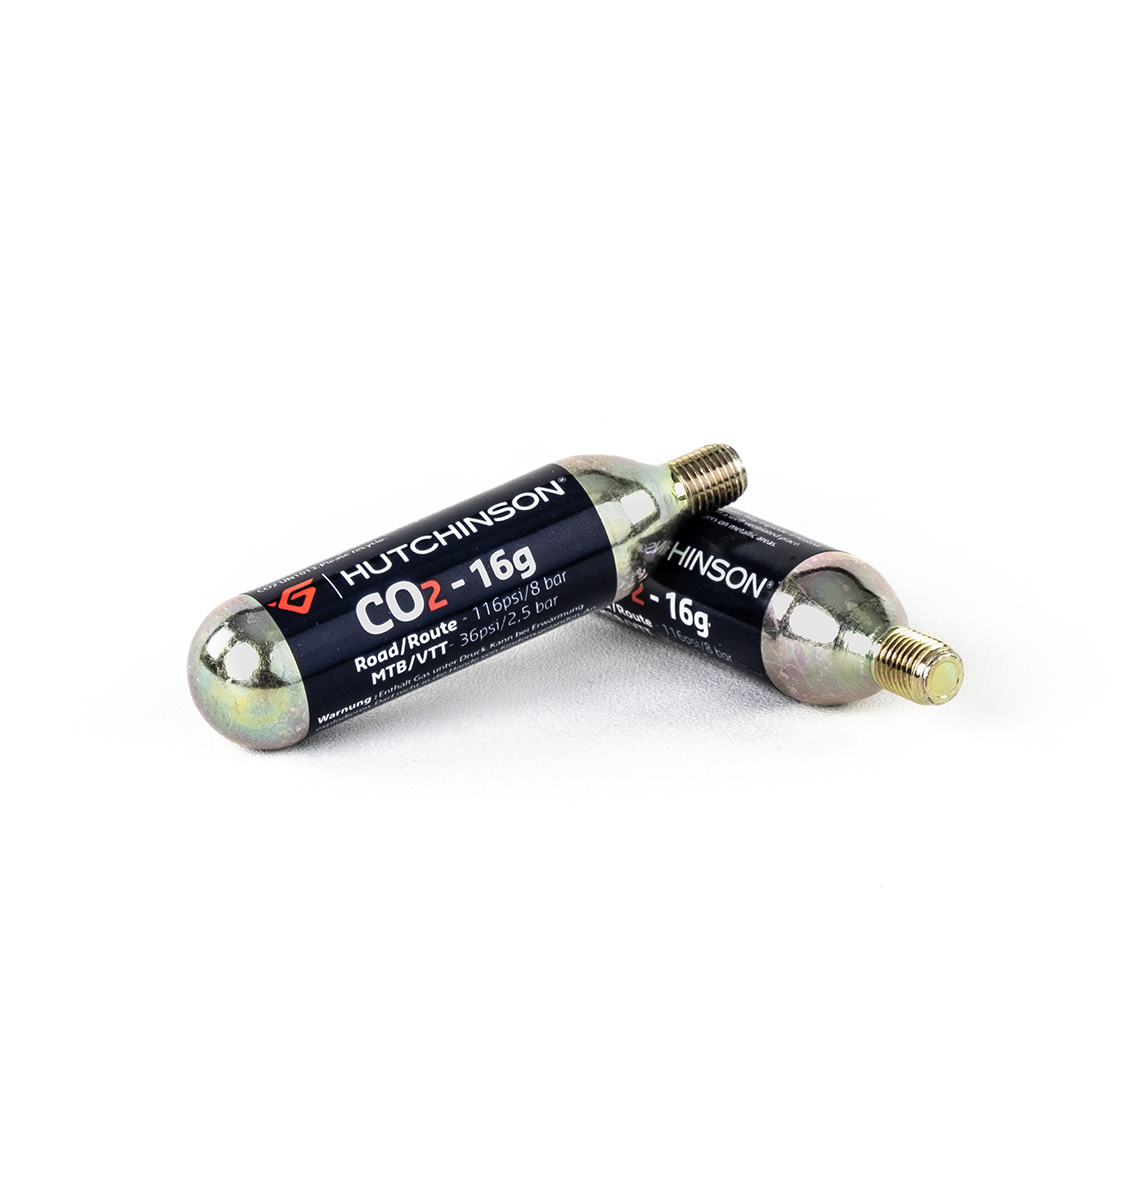 hutchinson-accessories-co2-cartridges-3